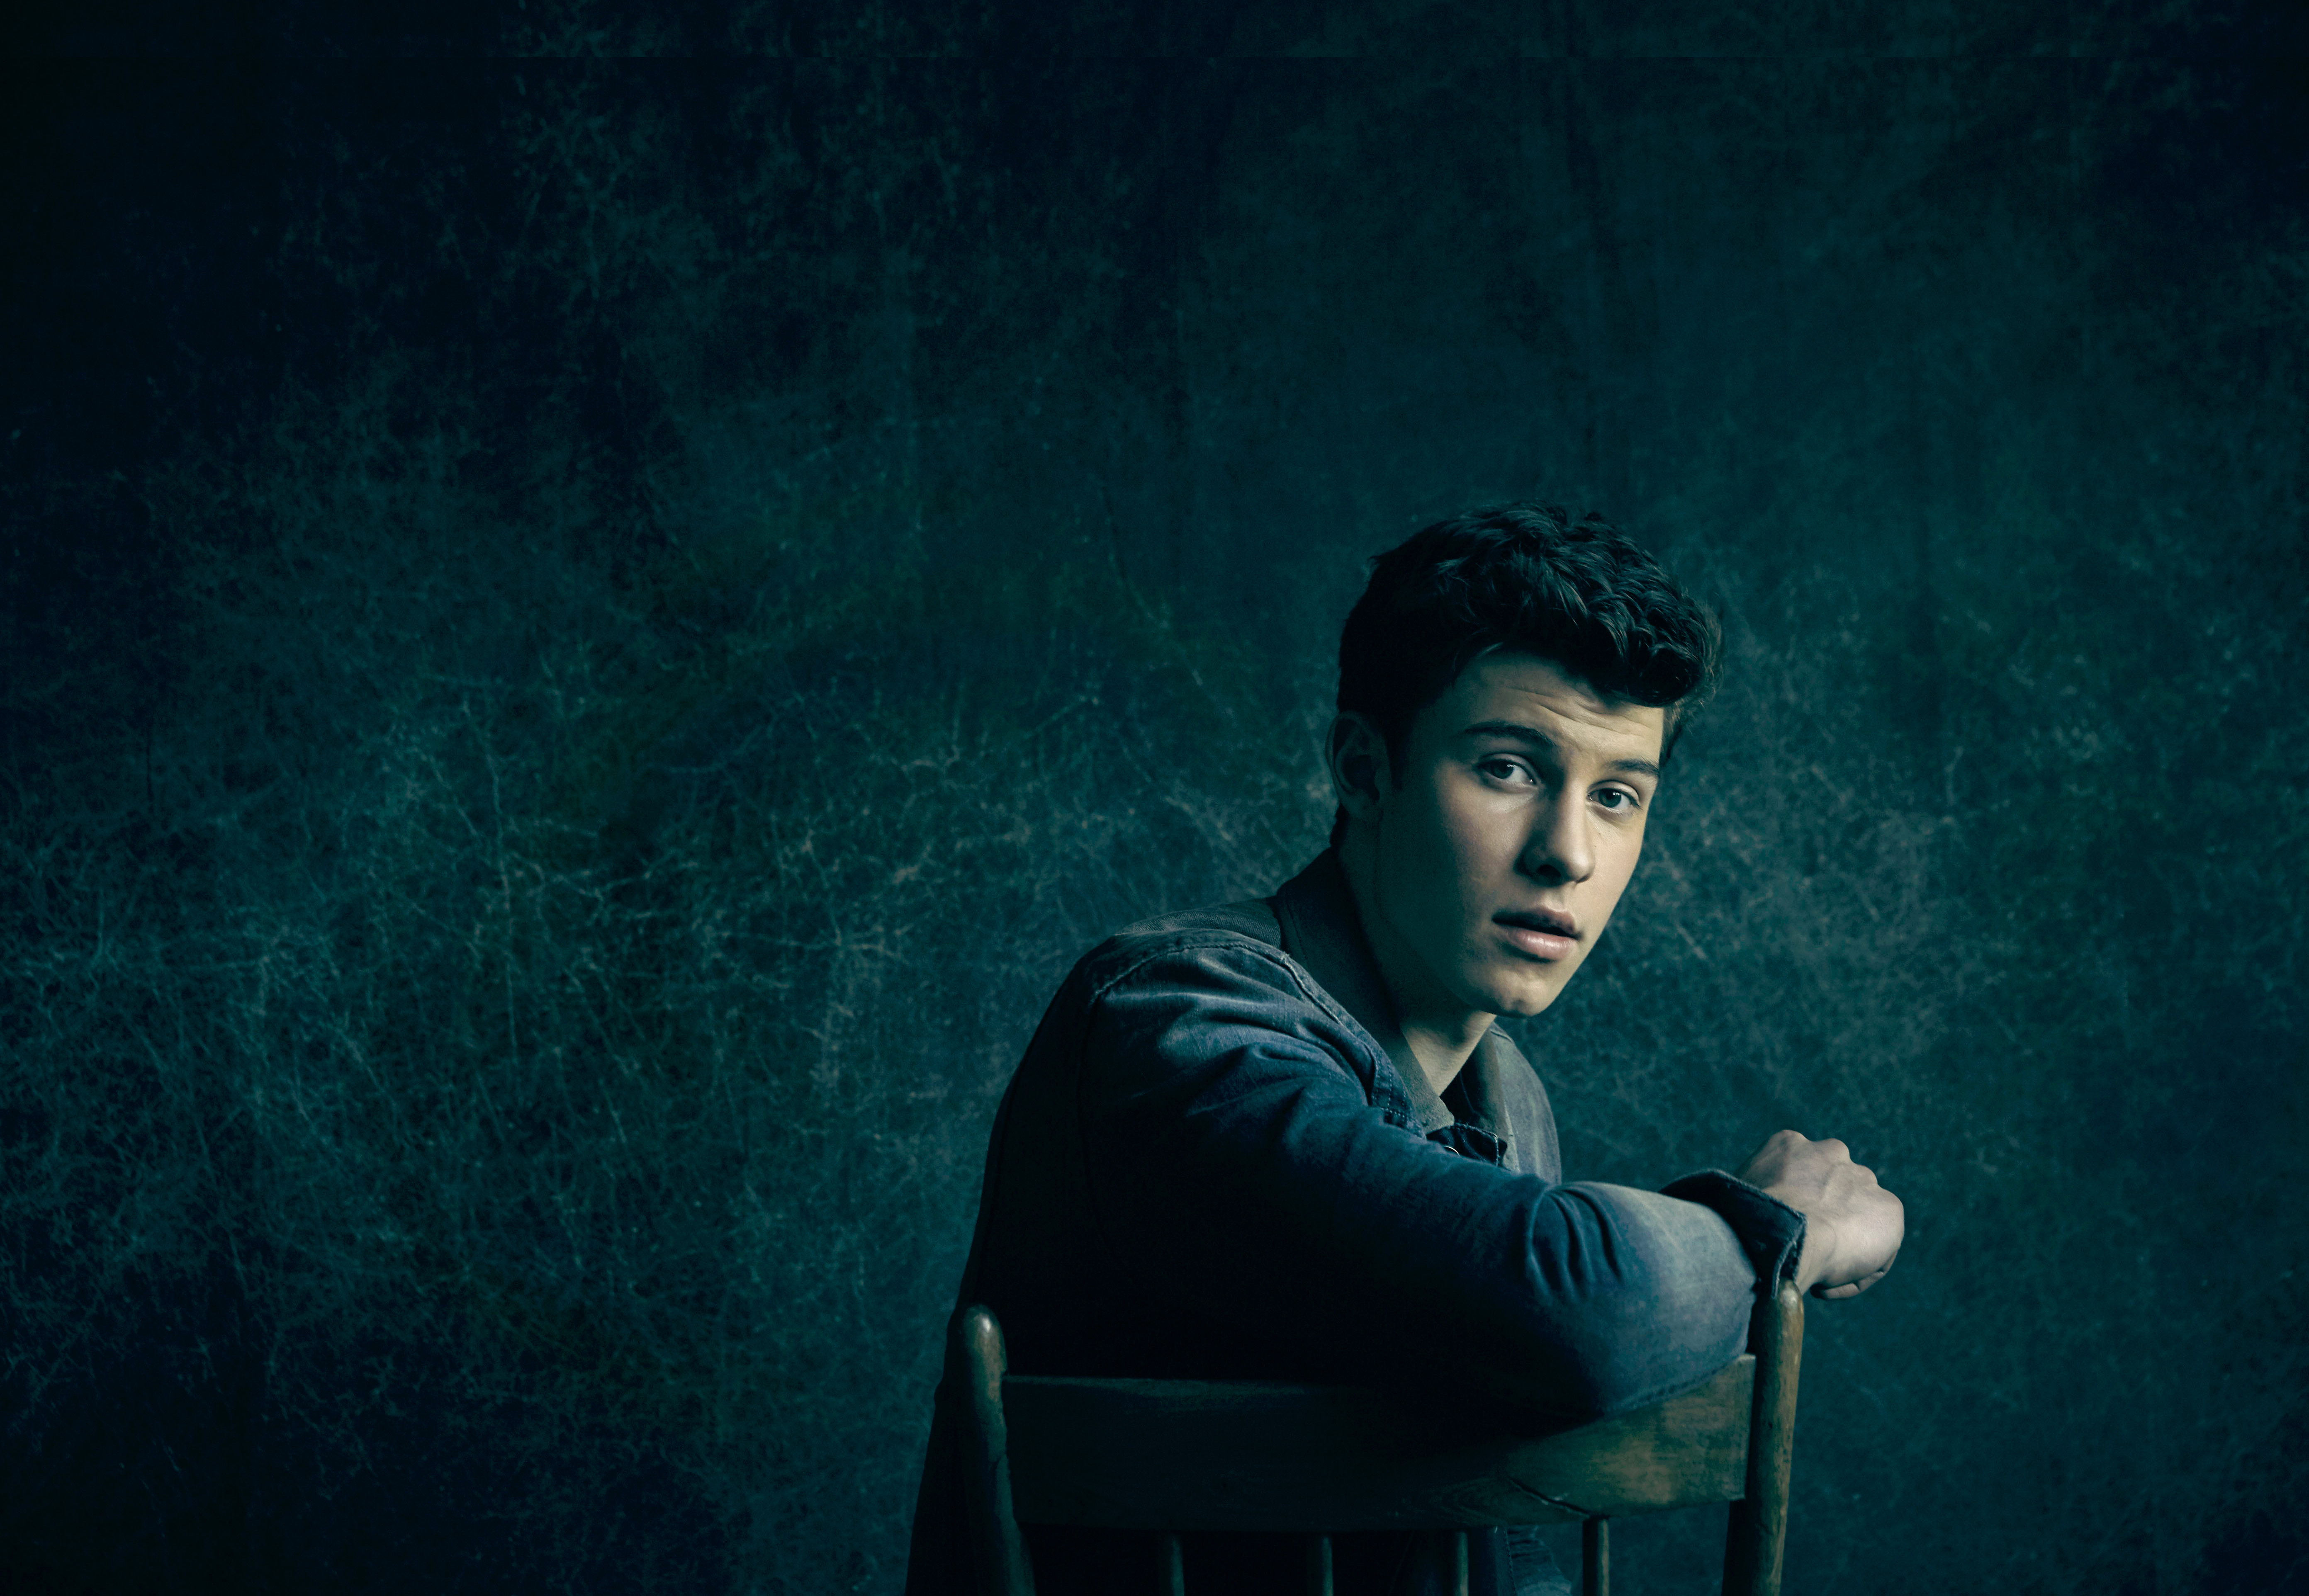 Shawn Mendes Wallpaper Gallery Yopriceville   High Quality 5567x3849